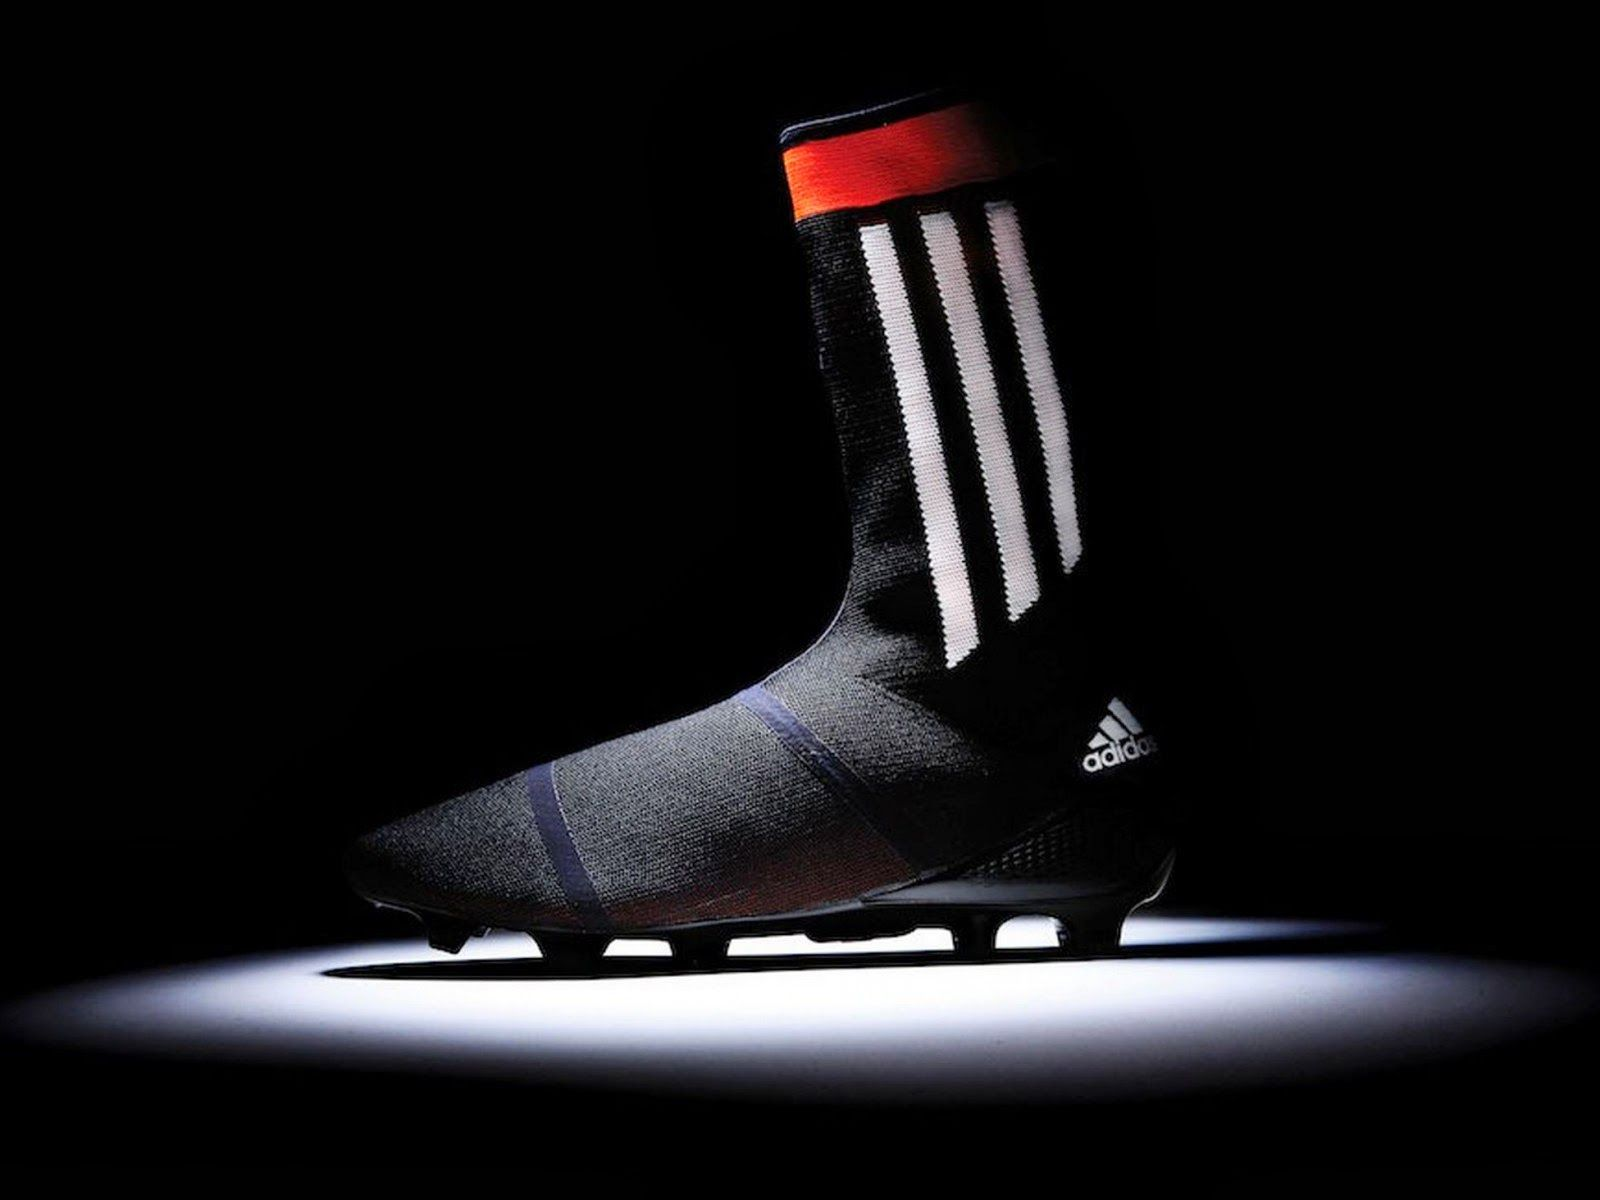 Amazing Wallpaper High Quality Adidas - 56c8e472fd9e7d59d942d7805dd810ed  Perfect Image Reference_346528.jpg